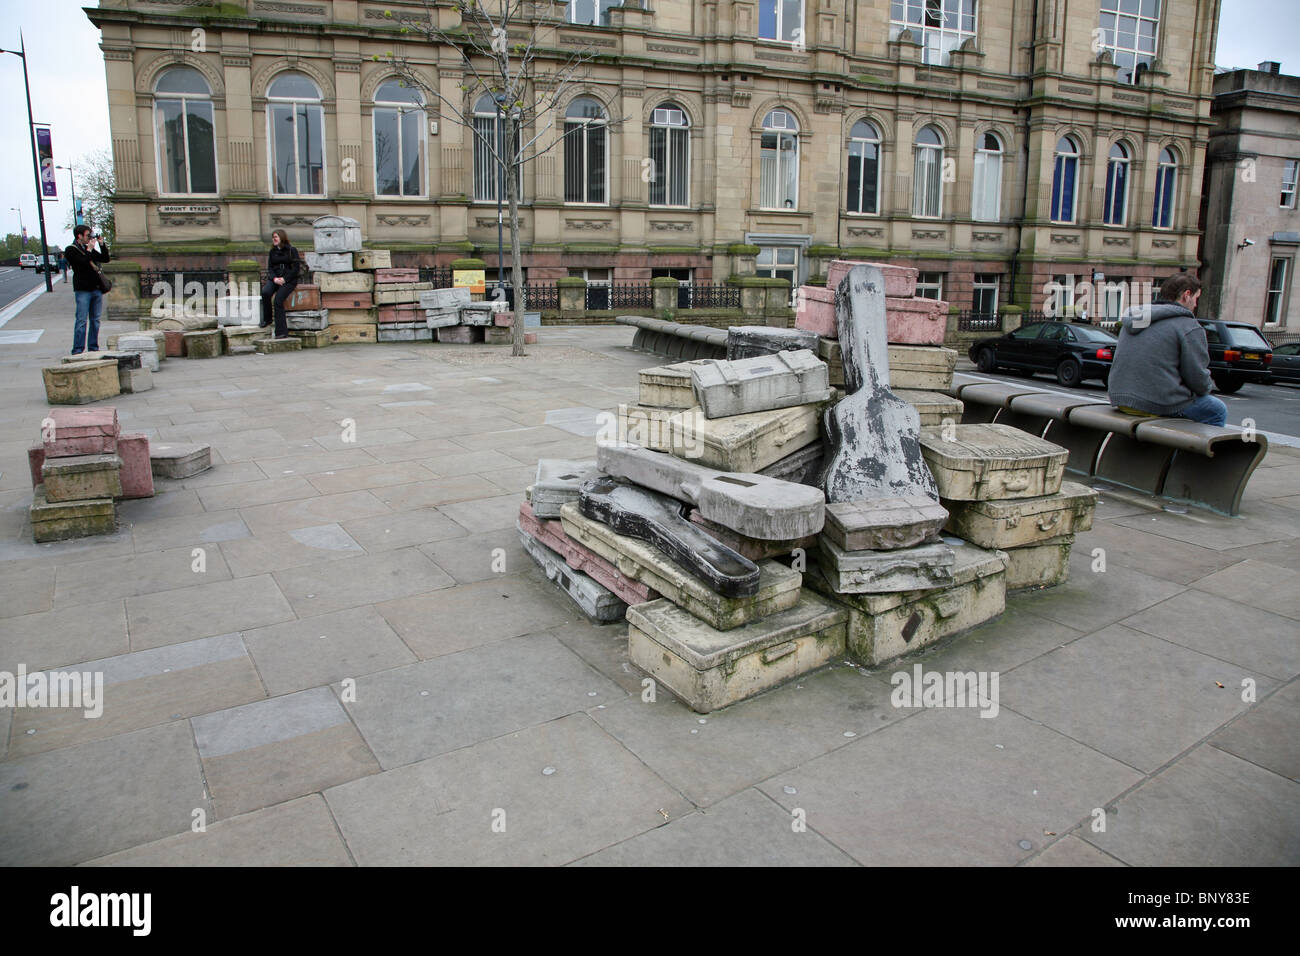 The John King street sculpture 'A Case History' in Hope Street, Liverpool, England, UK - Stock Image